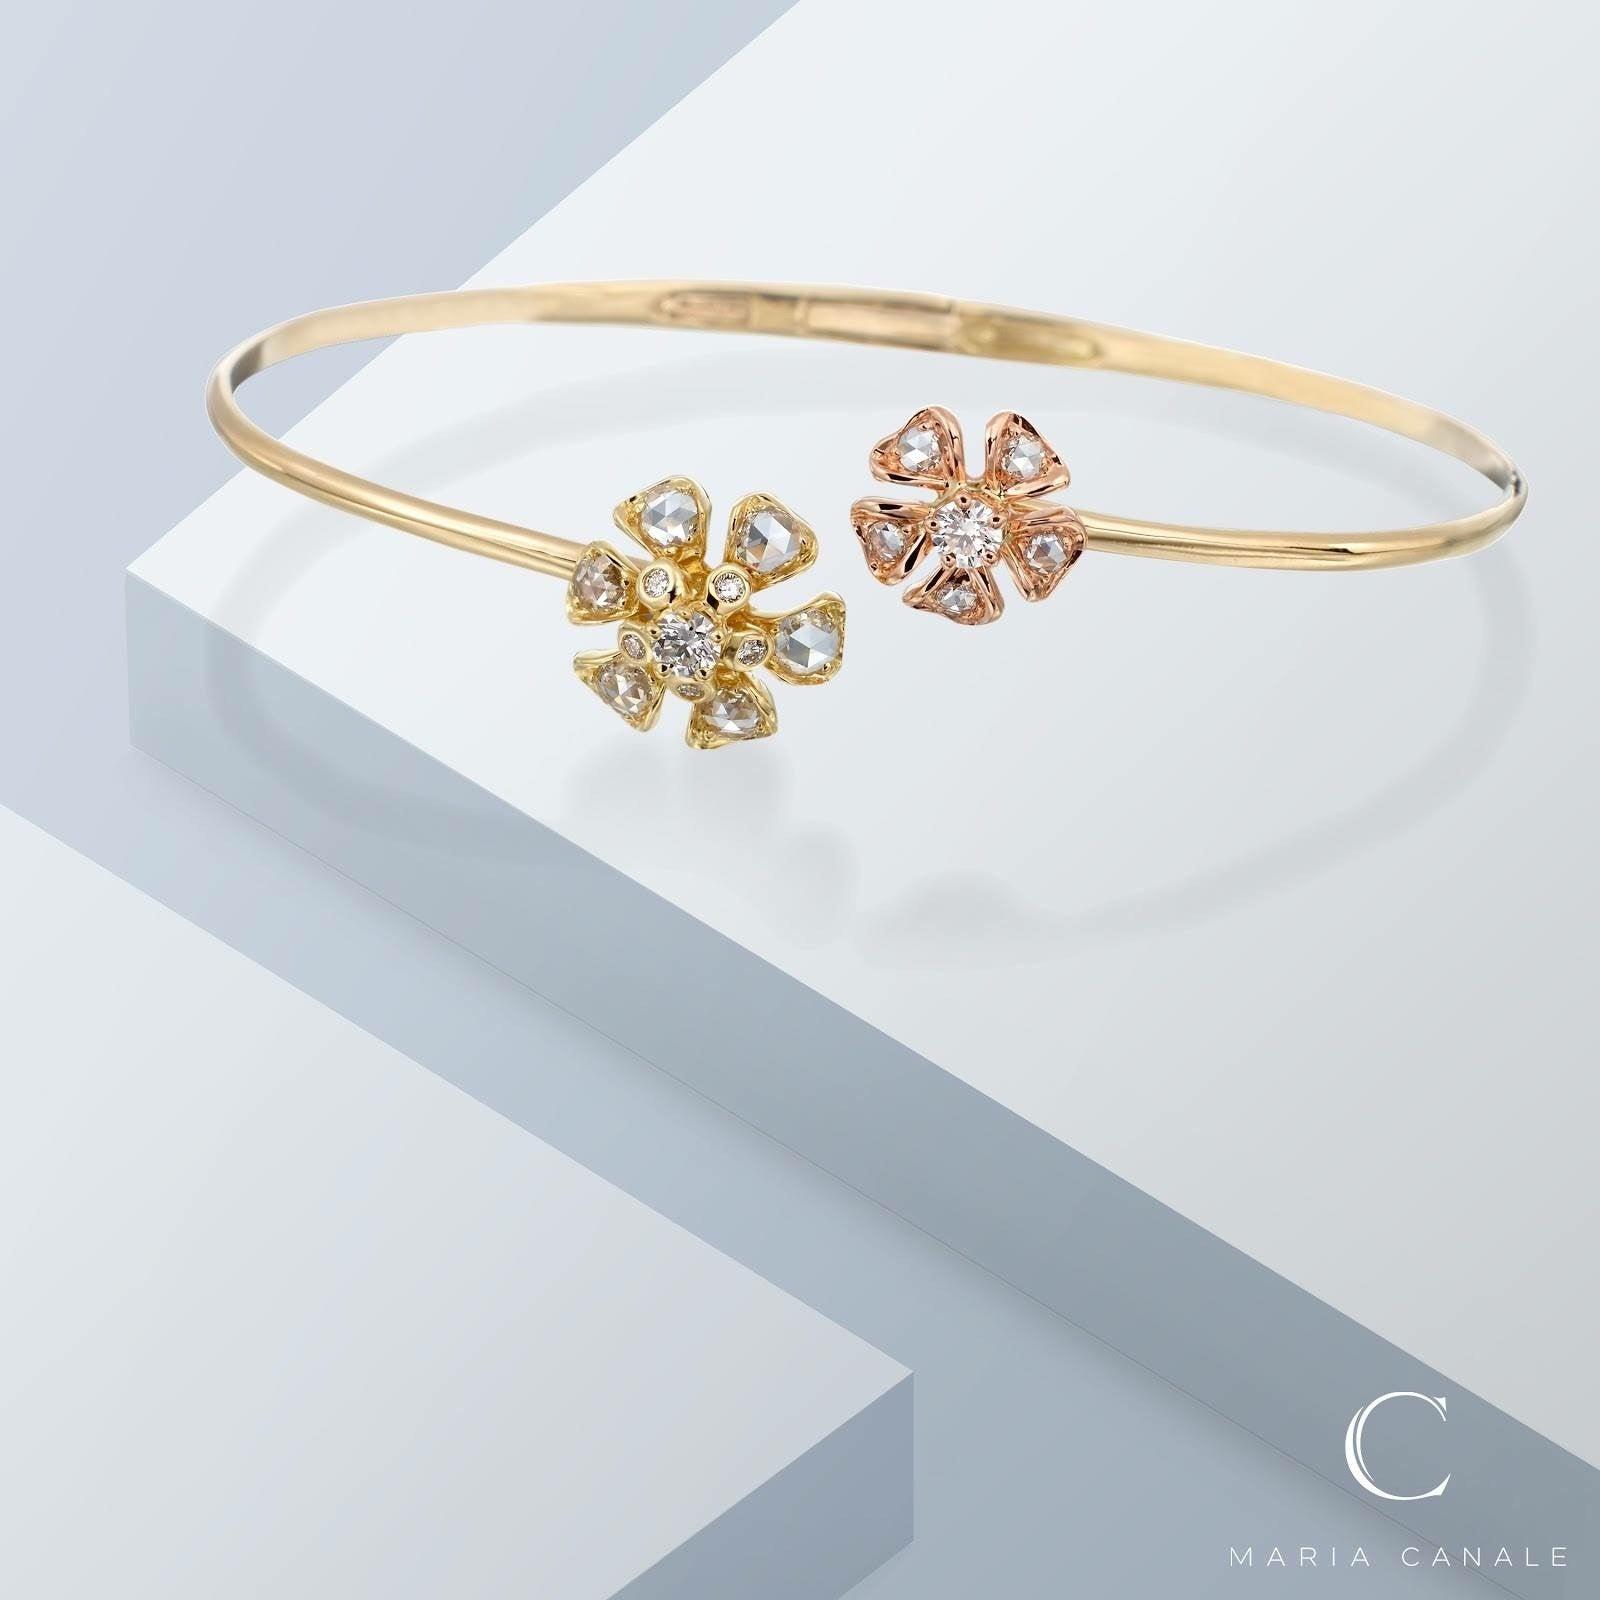 Petite Aster blossom bangle bracelet